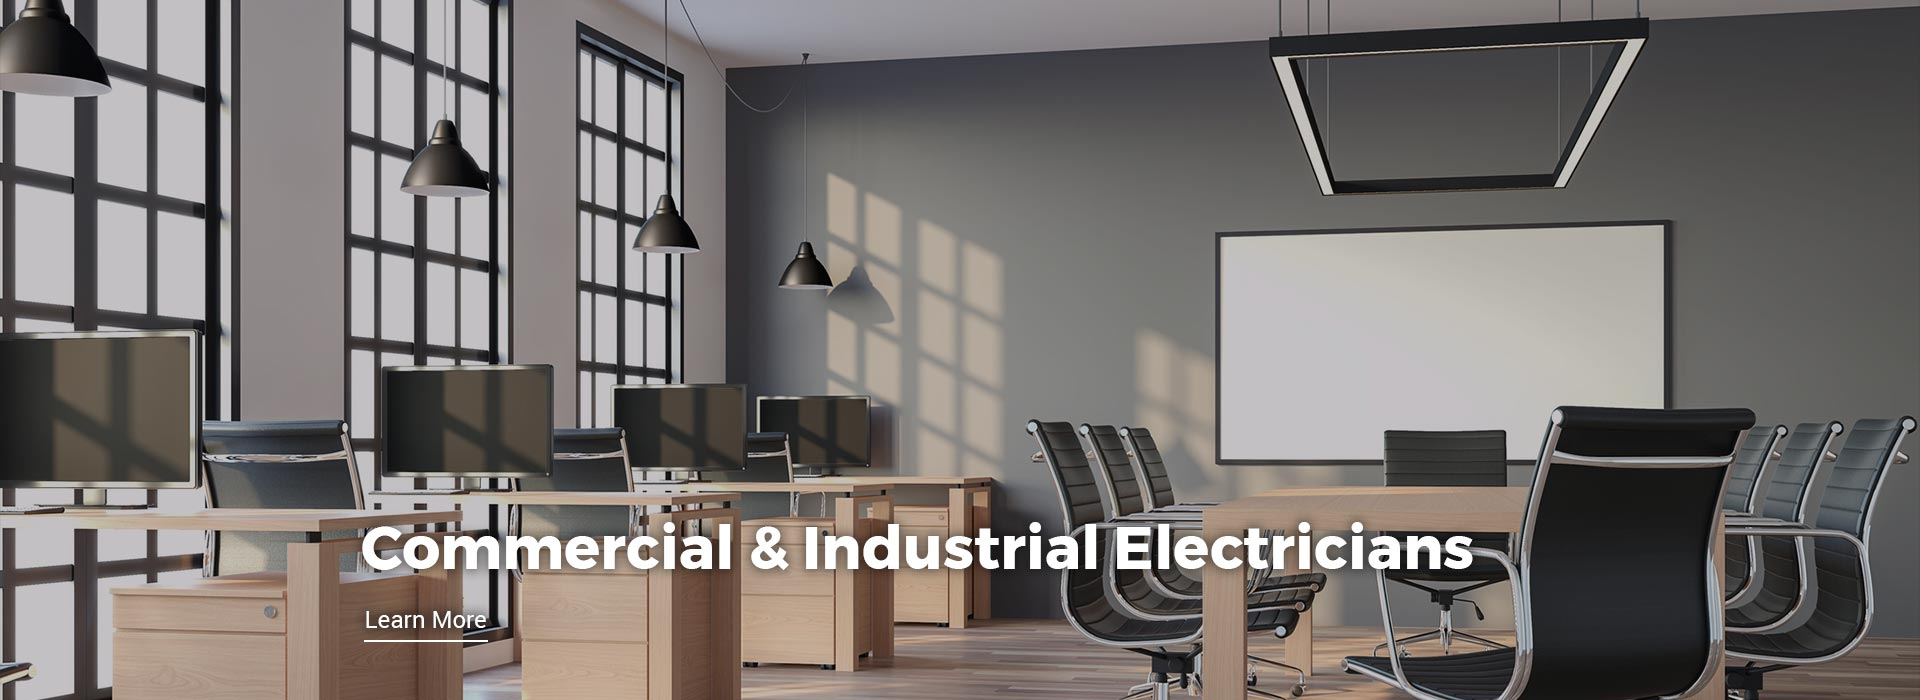 Walltech Electrical and Data specialise in commercial and industrial projects. Learn More